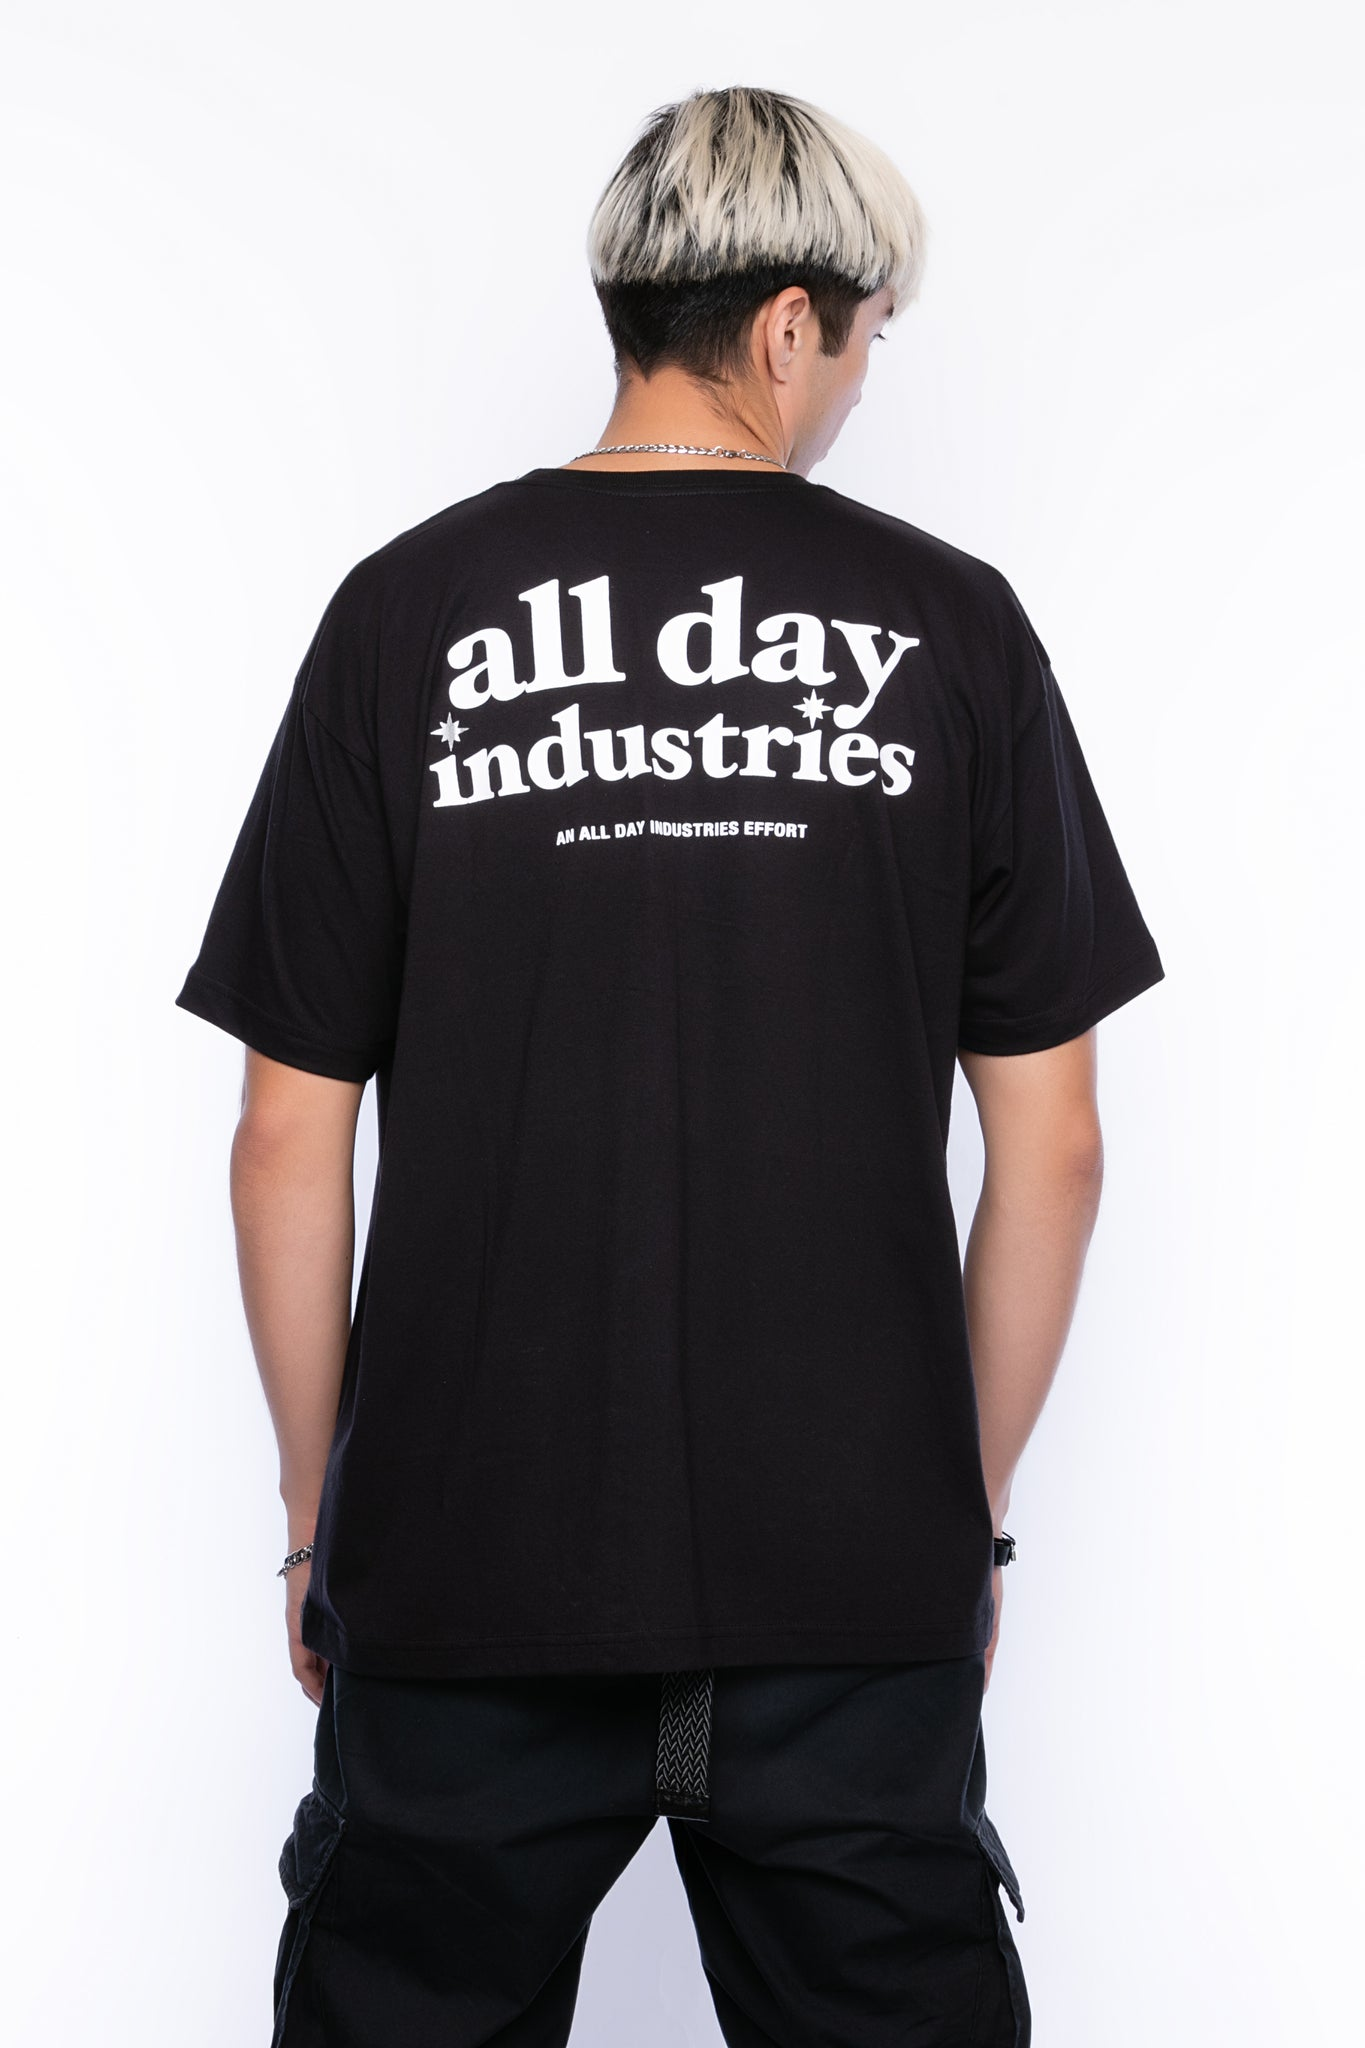 ALL DAY INDUSTRIES LOGO SHIRT - (Pitch Black)